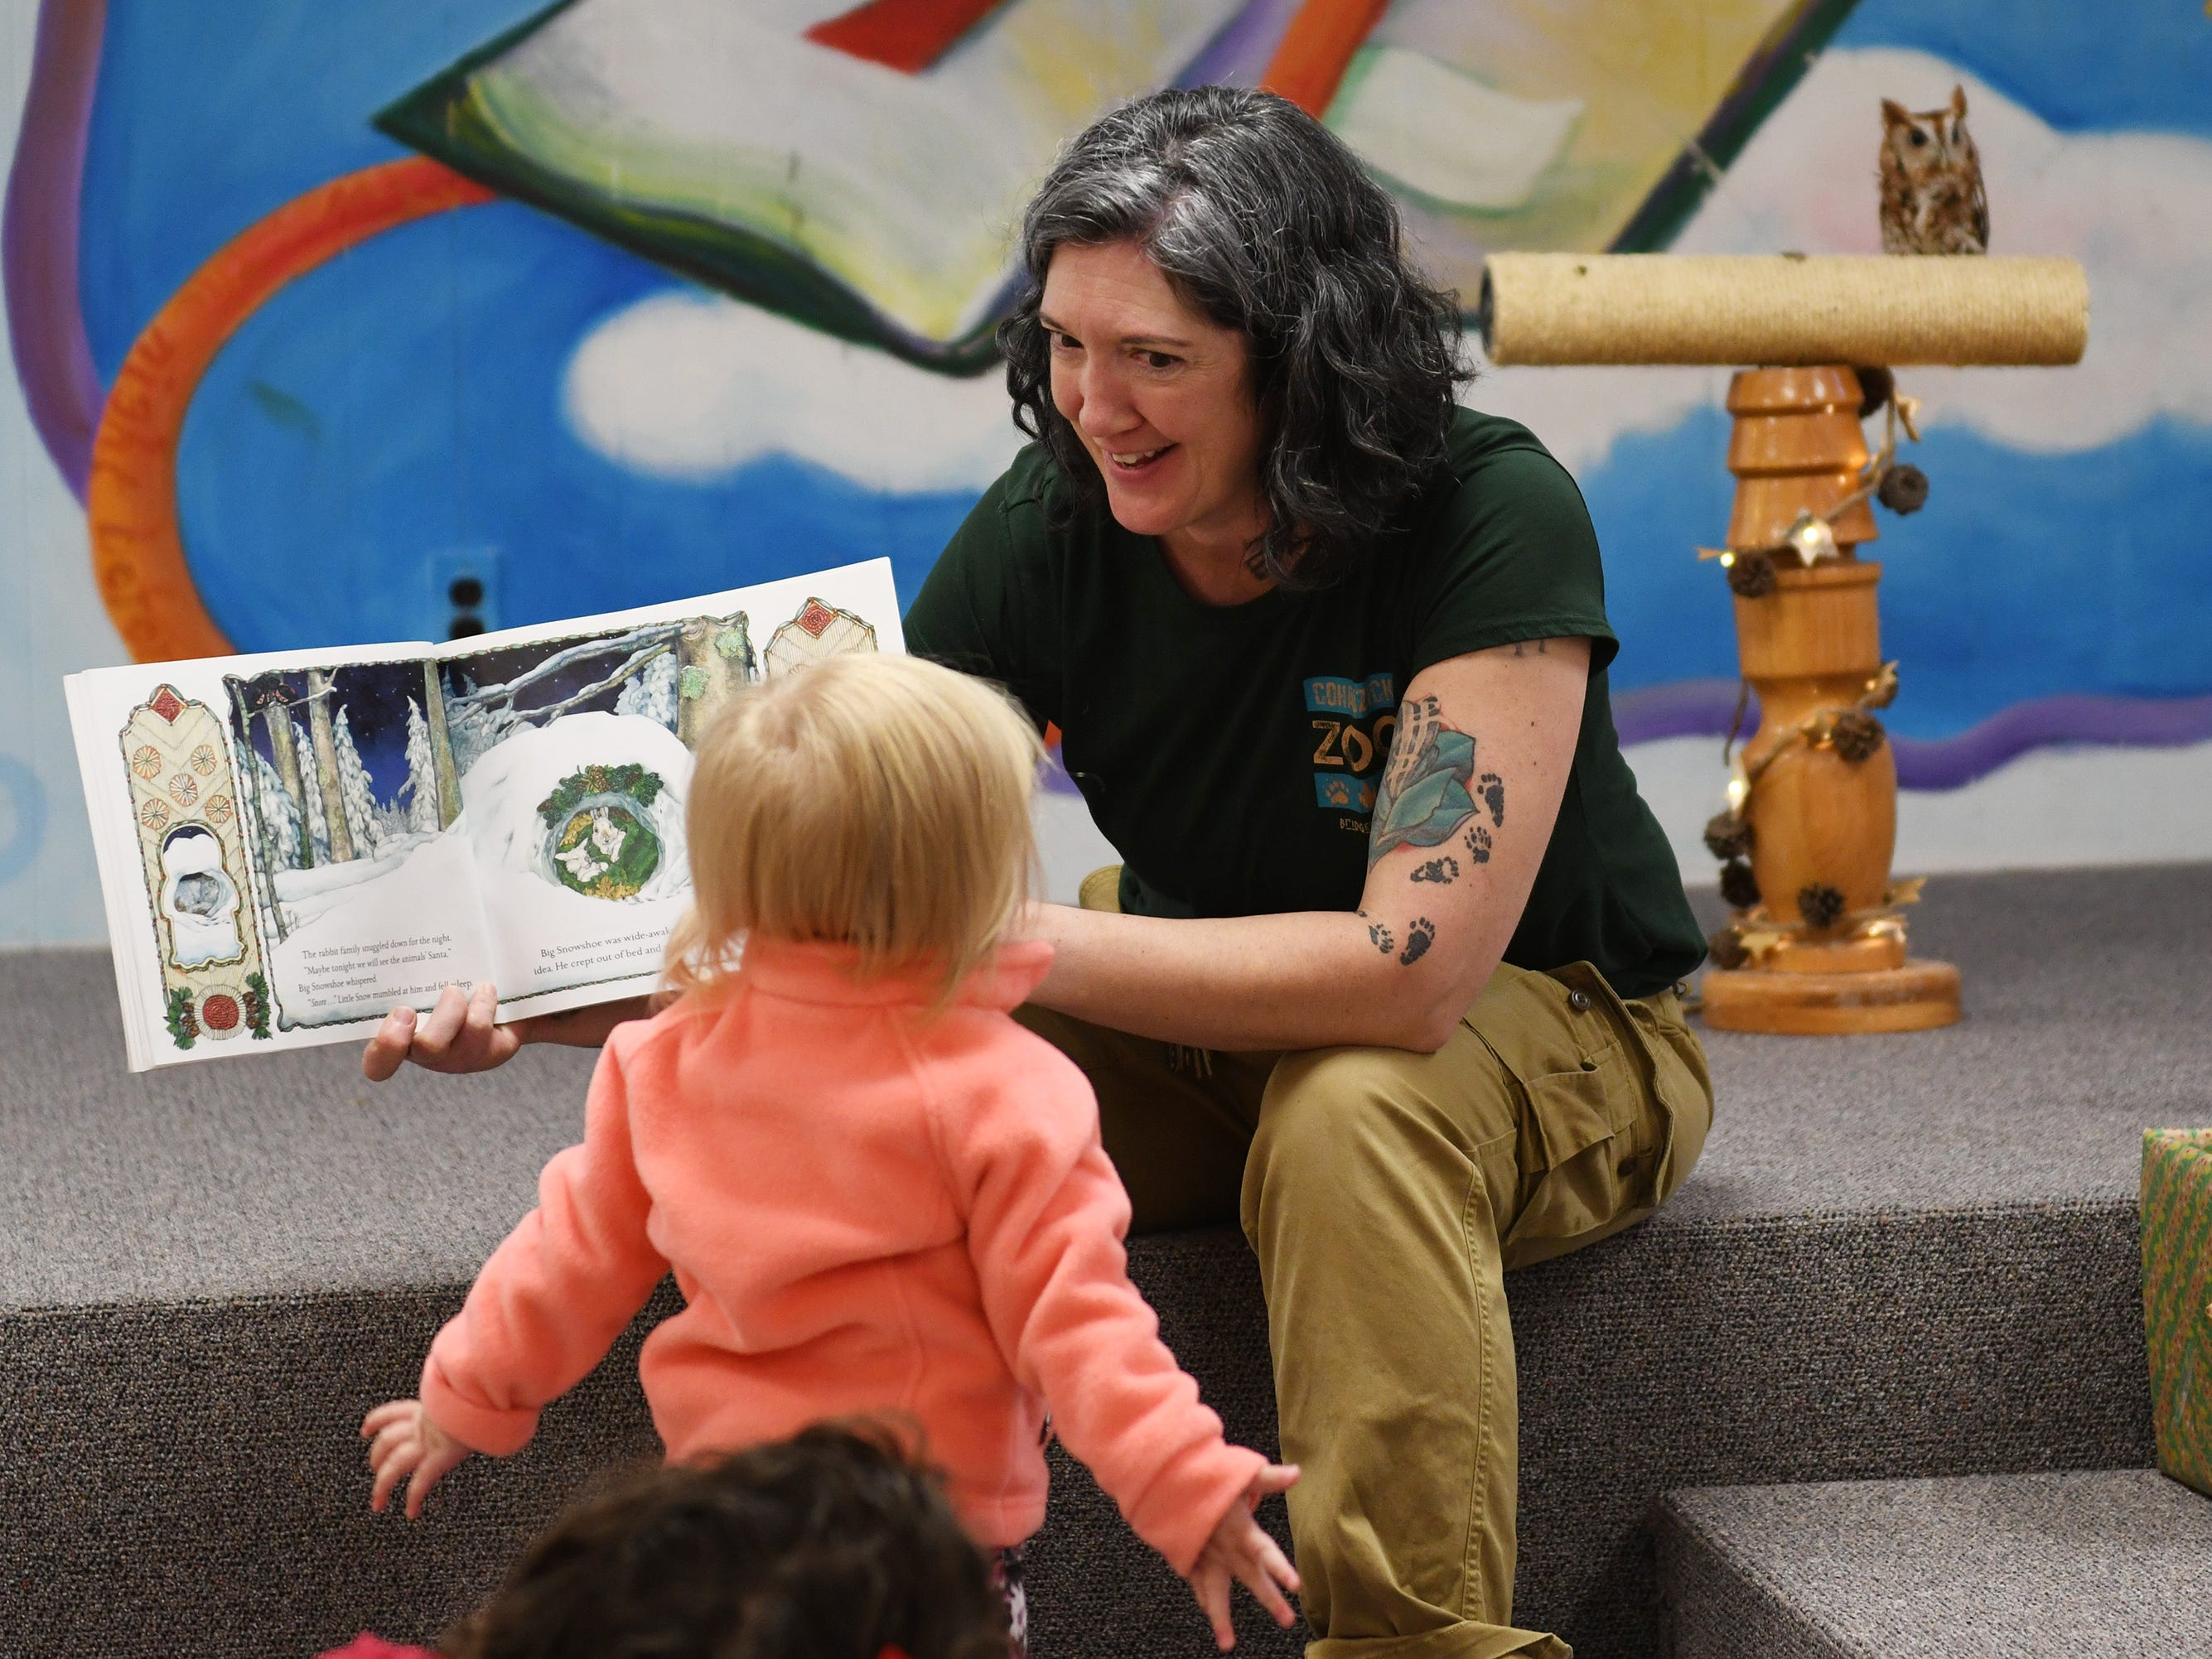 Cohanzick Zoo zookeeper Alison Bohn reads The Animals' Santa during Zoobrary time at the Bridgeton Public Library on Thursday, December 20, 2018.